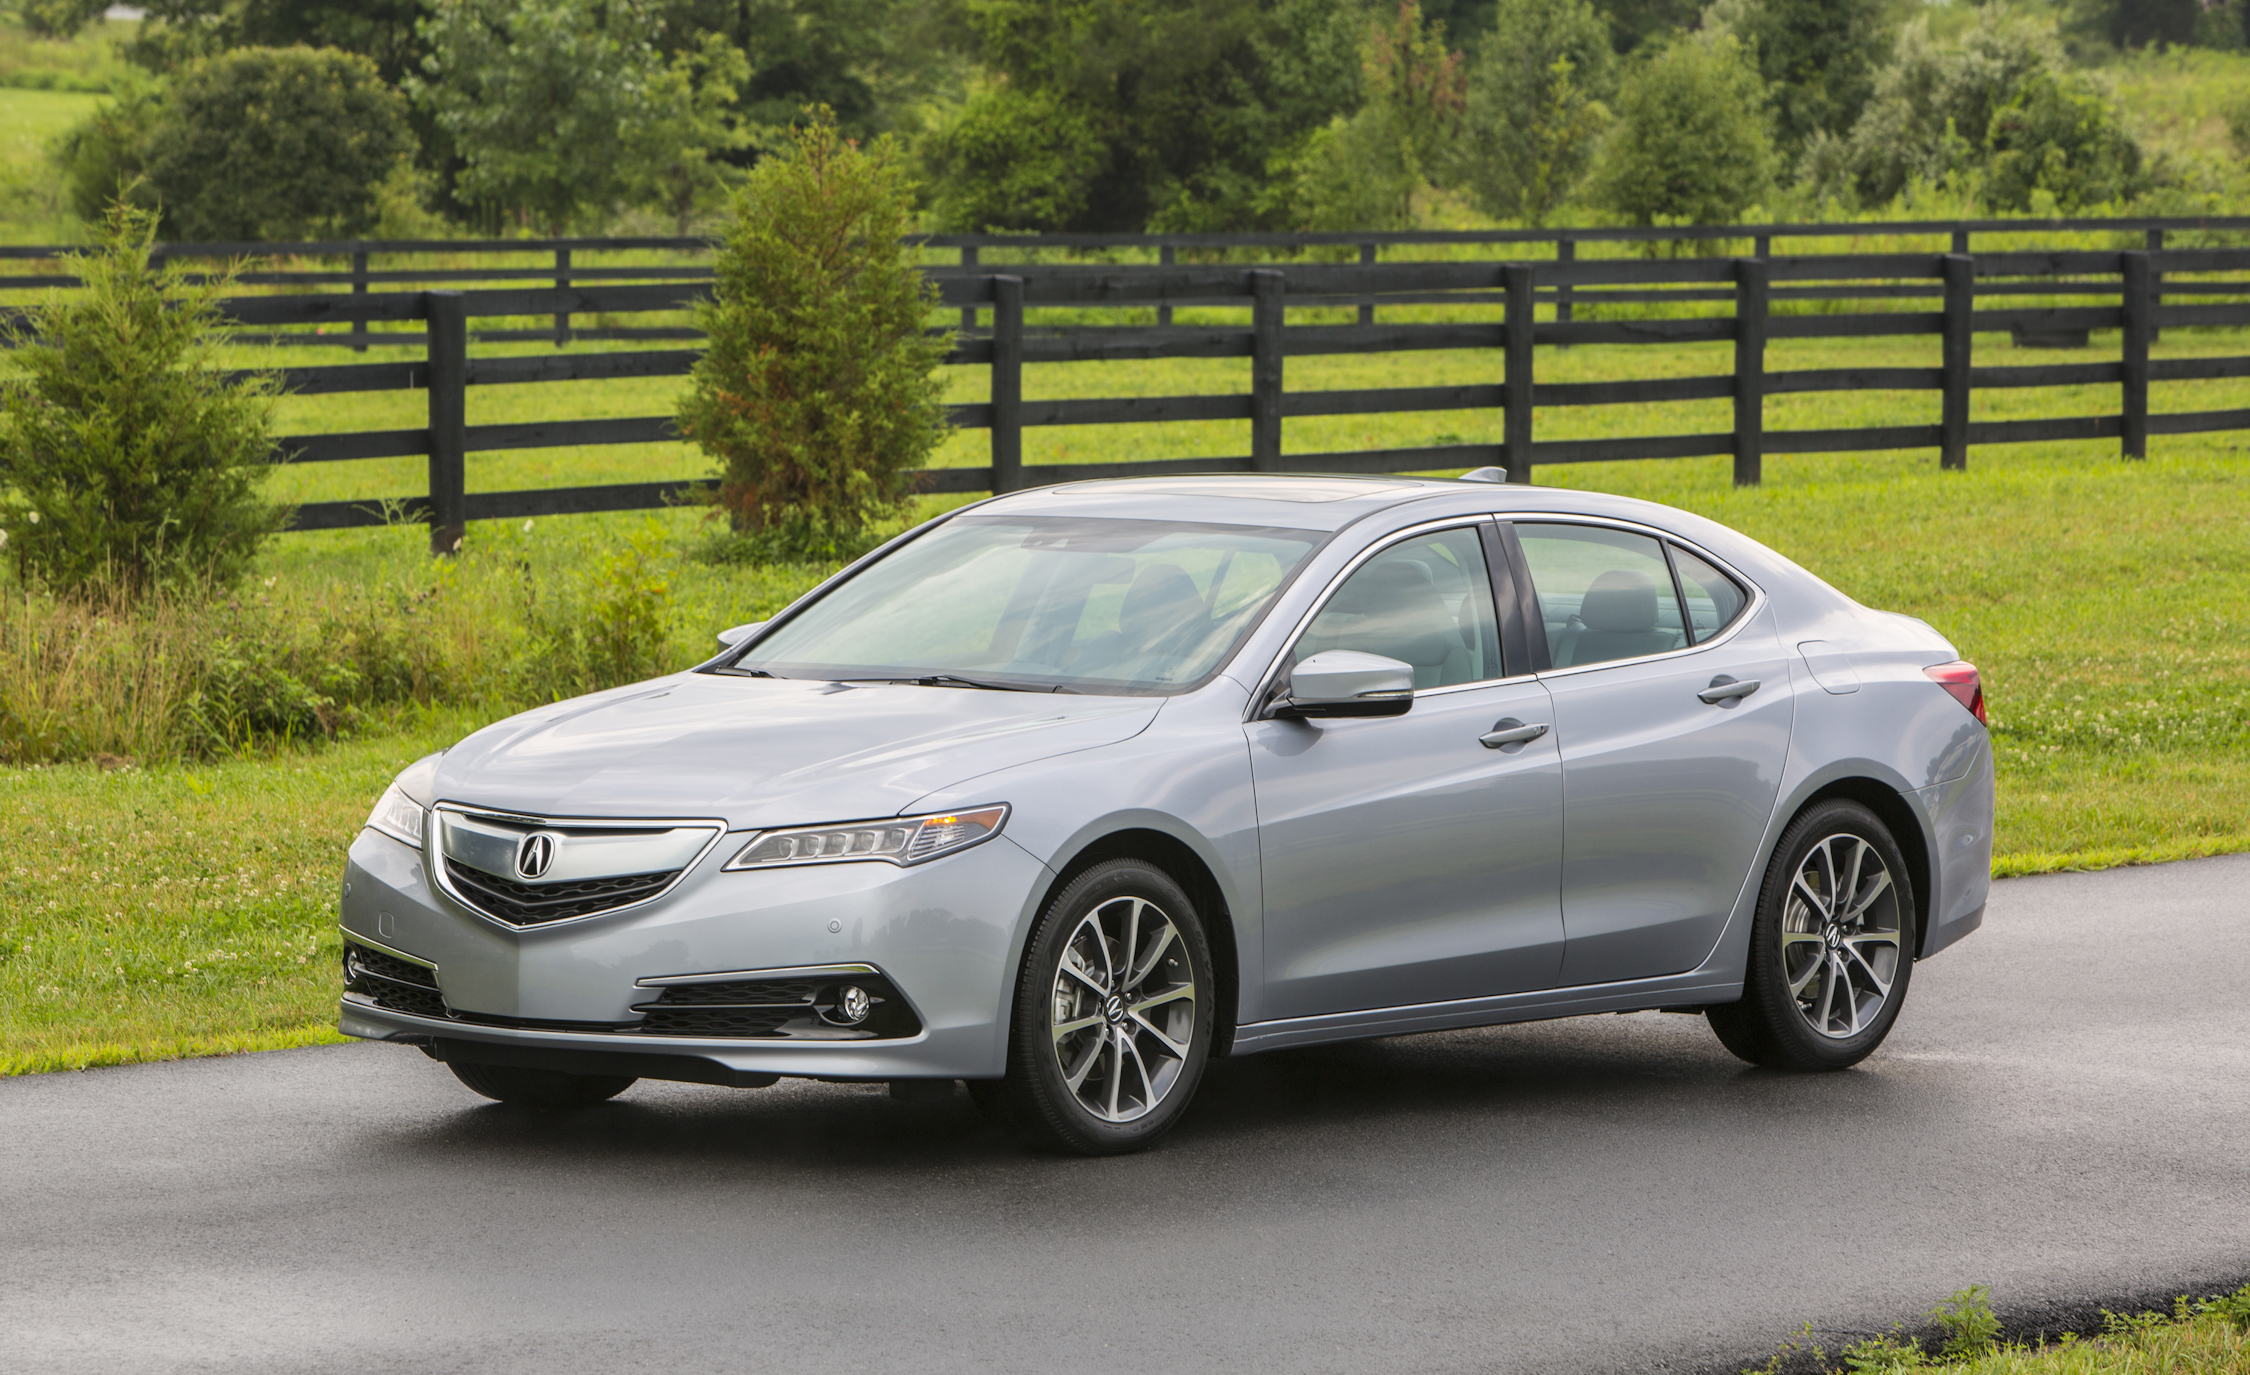 2015 acura tlx review small luxury sedan with power 22 cars performance reviews and test drive. Black Bedroom Furniture Sets. Home Design Ideas